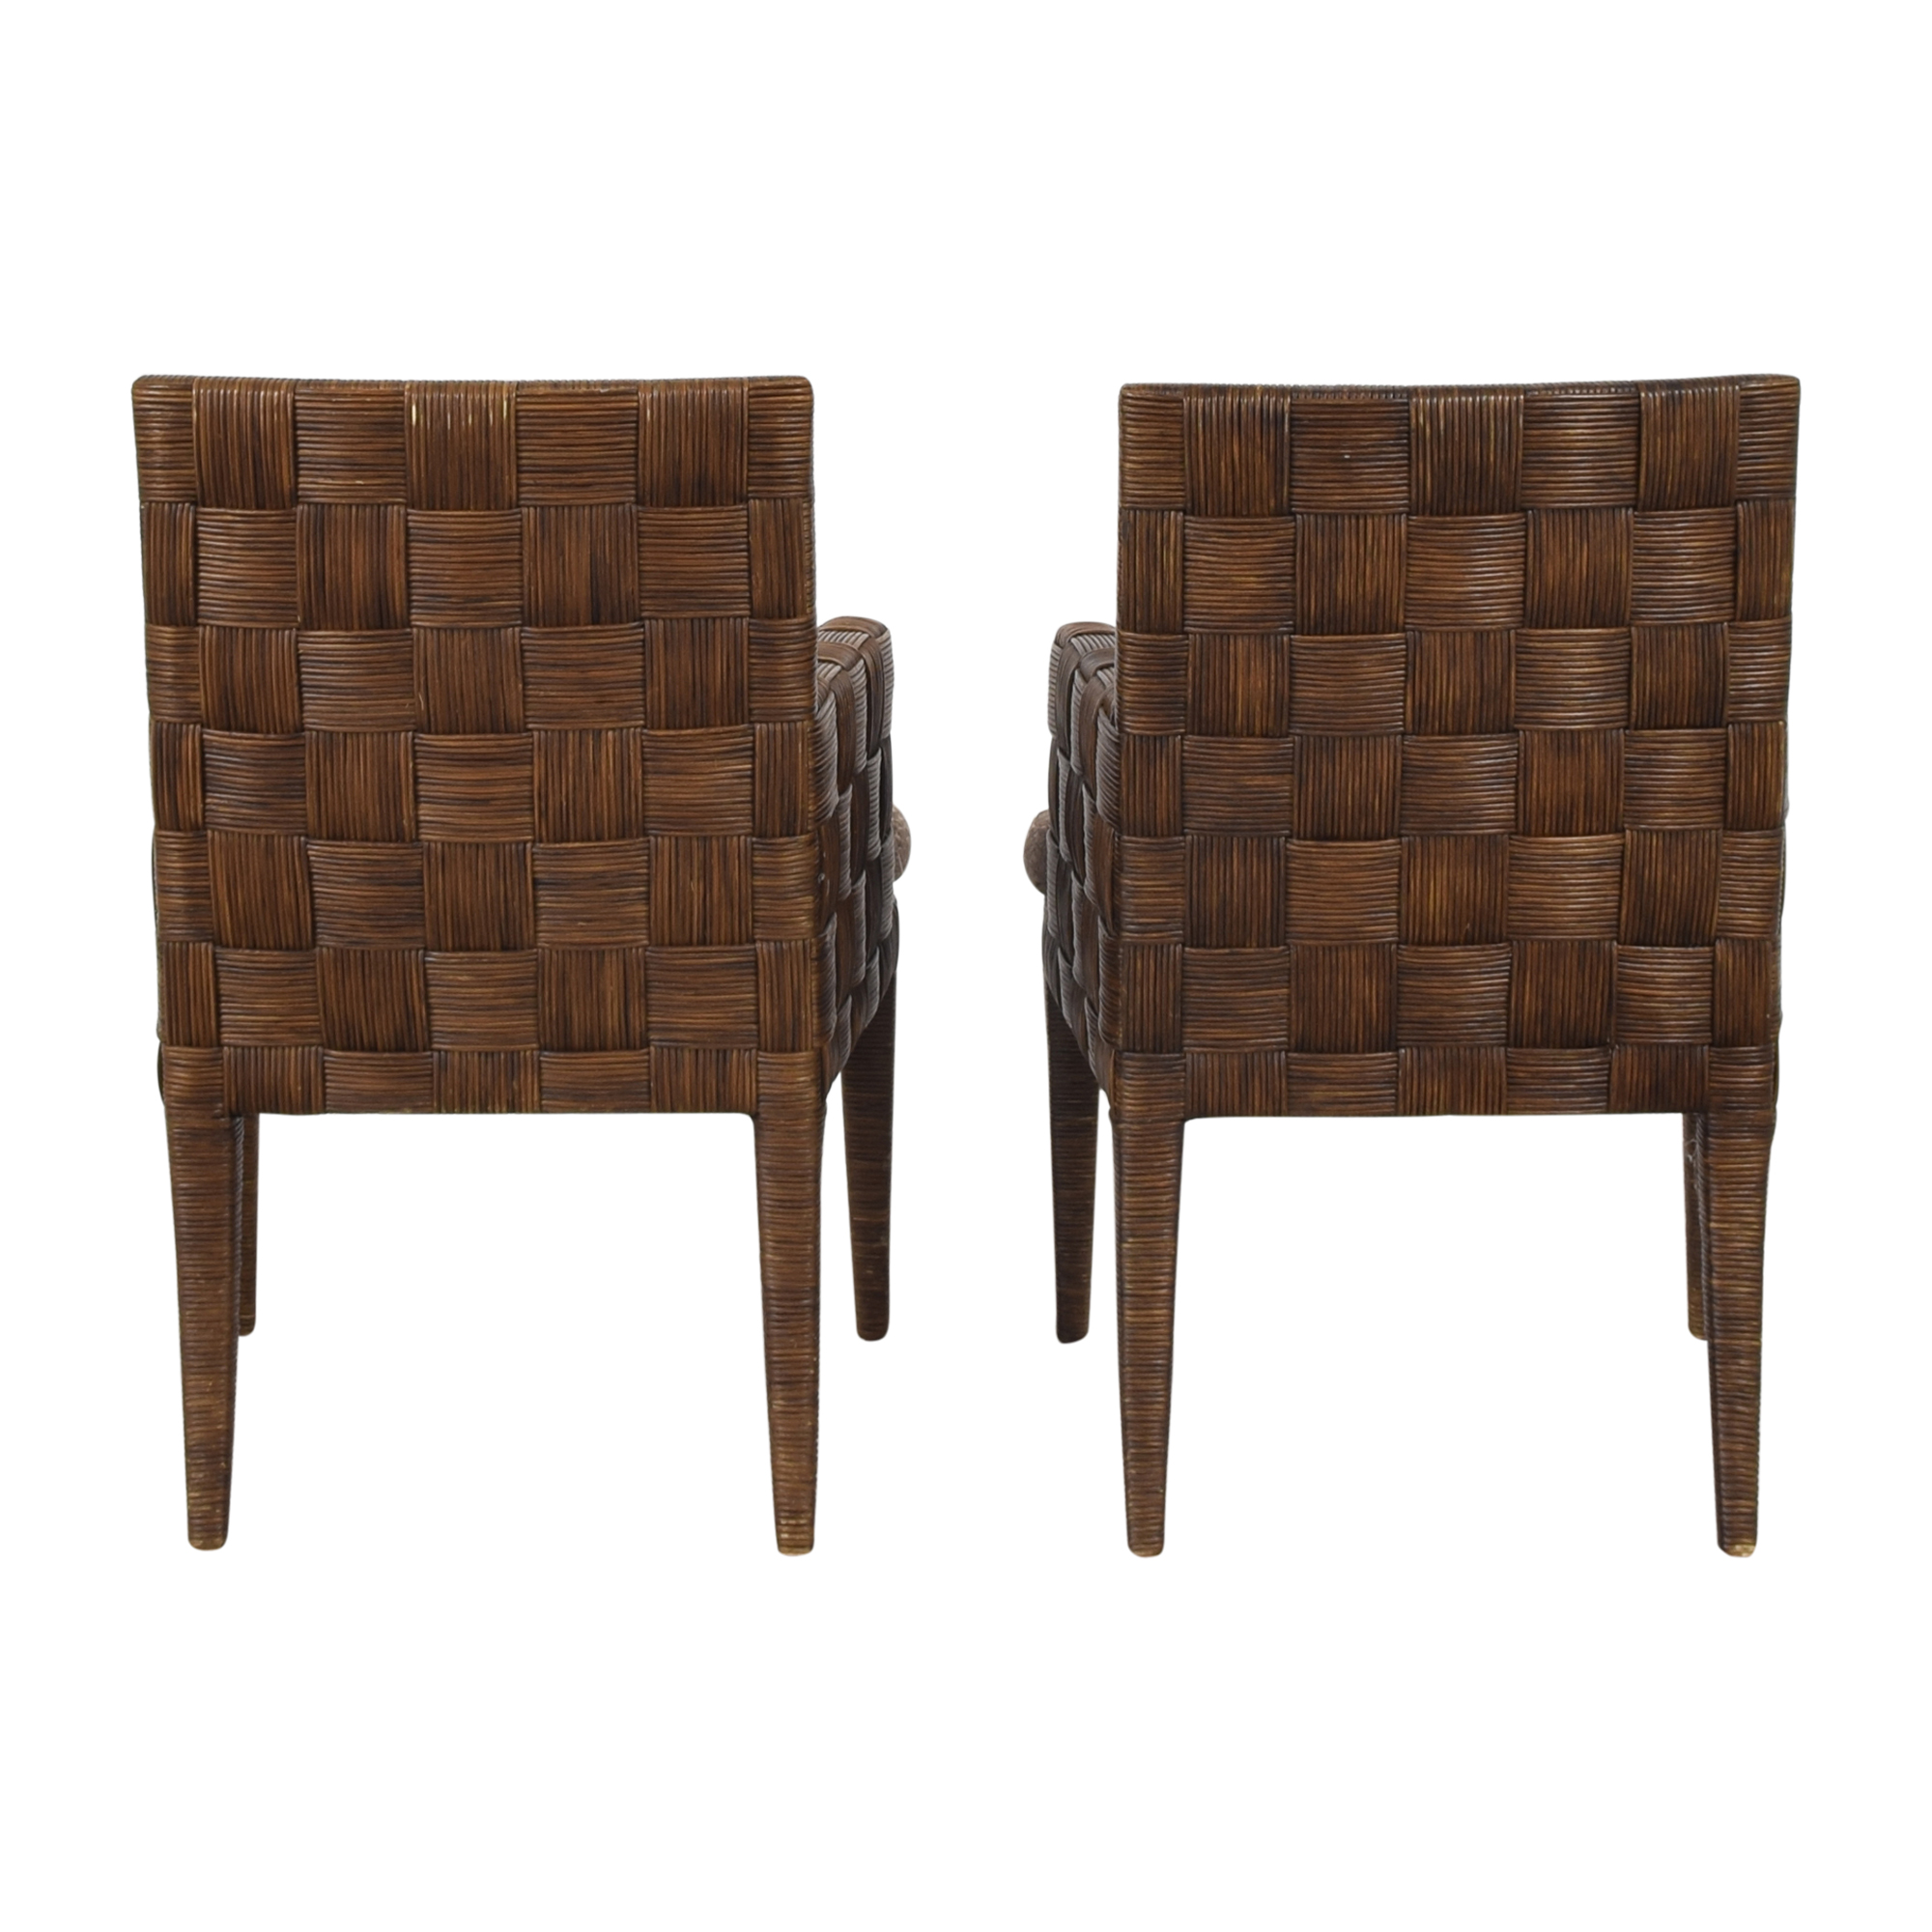 Donghia Donghia by John Hutton Block Island Dining Armchairs dark brown and beige